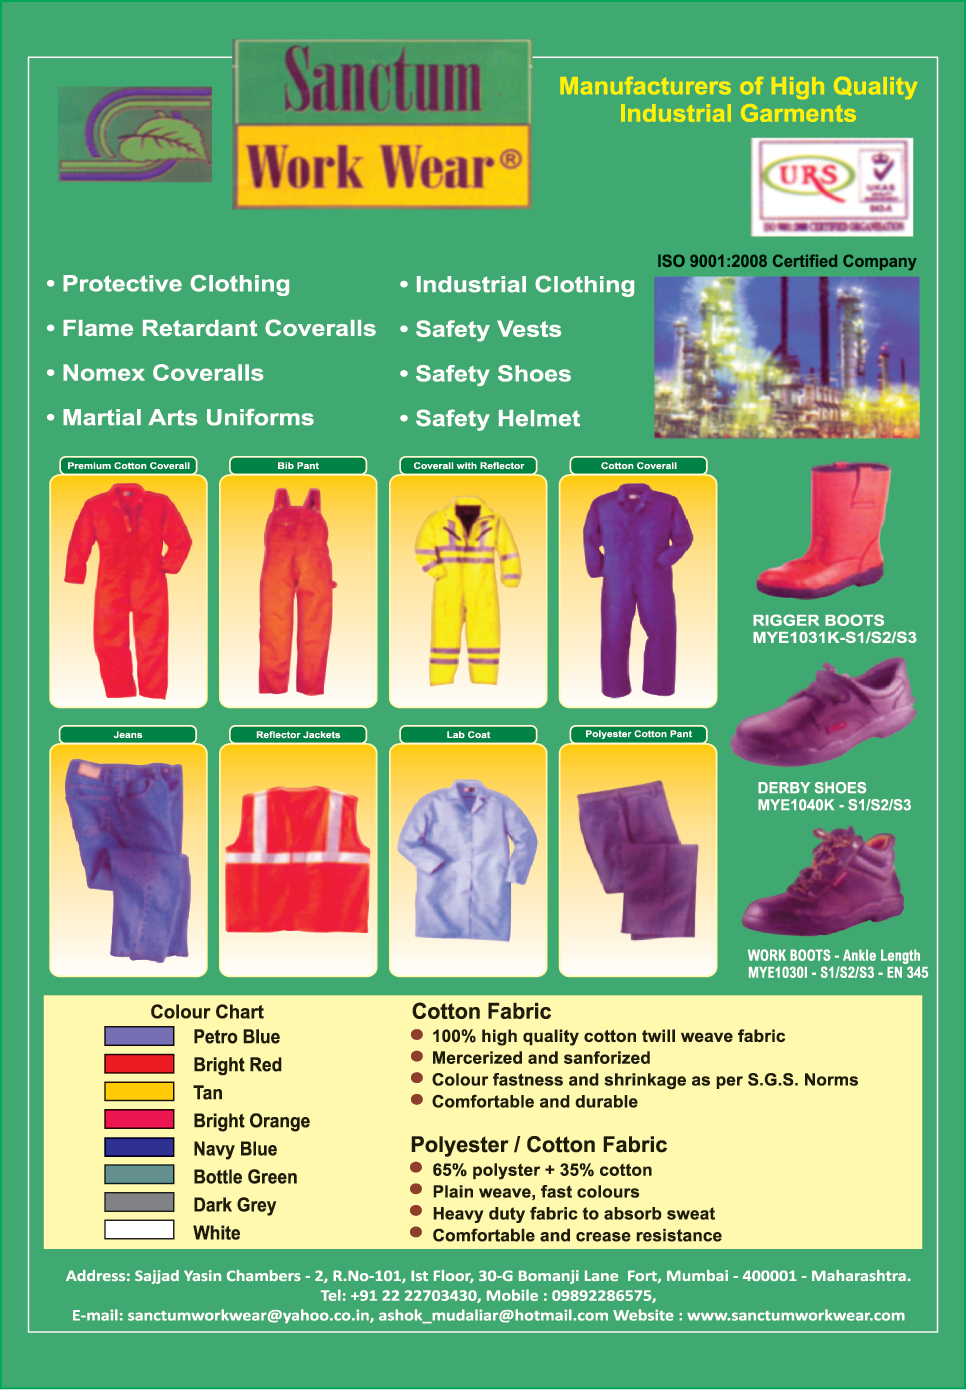 Protective Clothings, Industrial Clothings, Flame Retardant Coveralls, Safety Vests, Safety Shoes, Safety Helmets, Martial Arts Uniforms, Nomex Coveralls, Industrial Garments, Rigger Boots, Derby Shoes, Work Boots, Bib Pant,  Cotton Coverall, Lab Coat, Reflector Jackets, Reflective Jackets, Jeans, Polyester Cotton Pant, Coveralls, Protective Cloths, Industrial Cloths